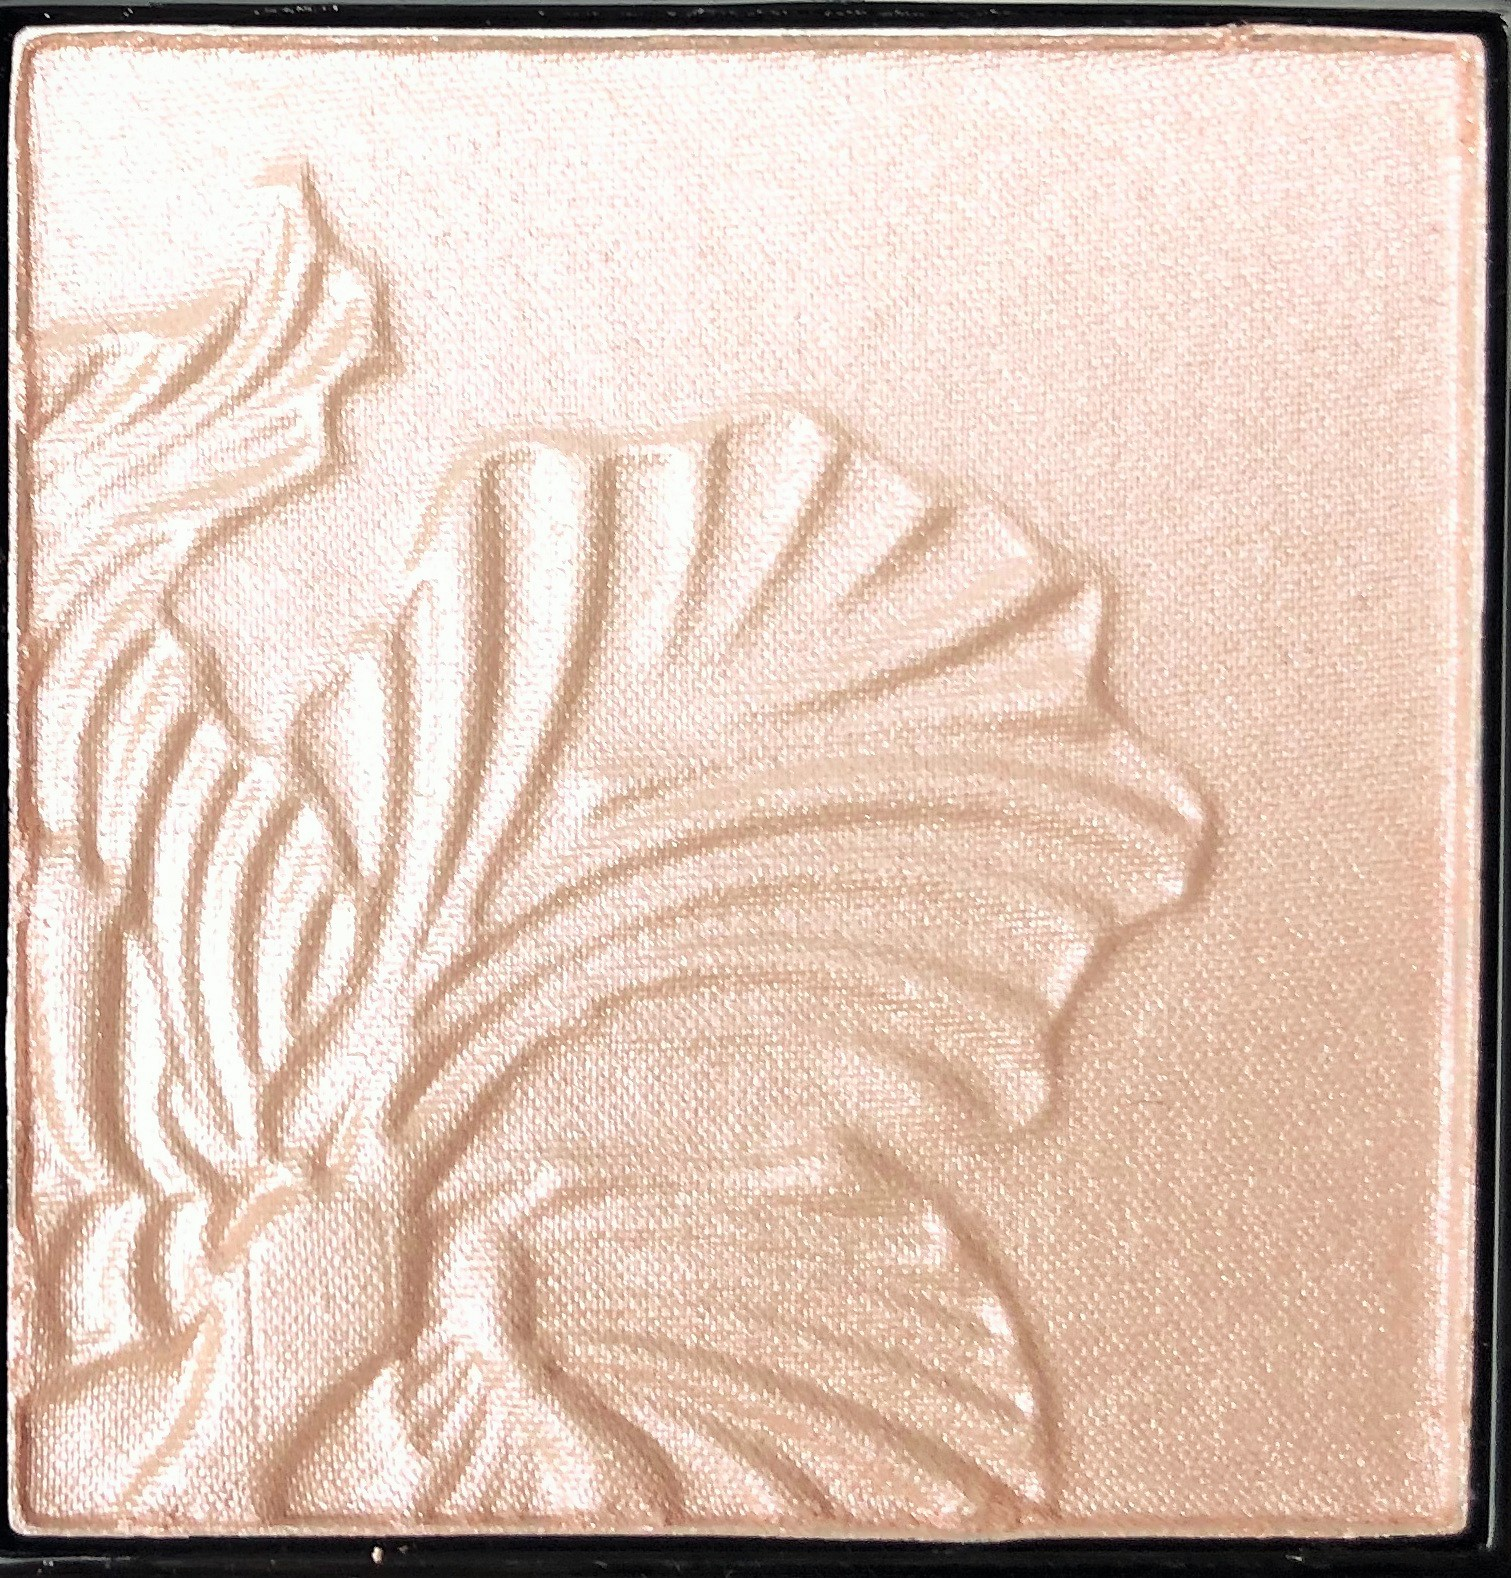 Review Wet n Wild Blossom Glow Megaglow Highlighter Powder (2)